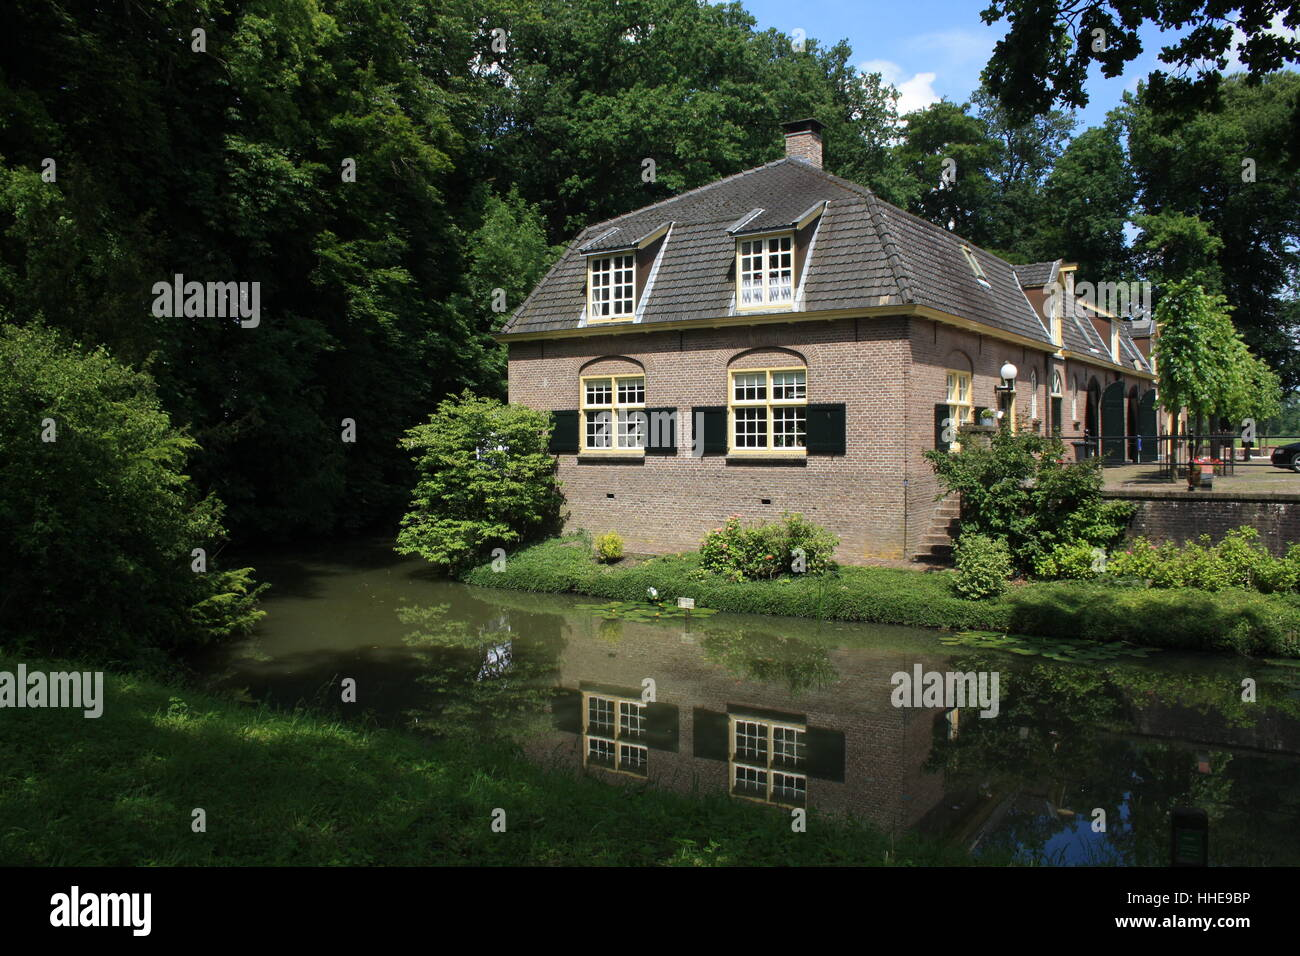 house, building, garden, holland, cottage, country, water, house, building, - Stock Image